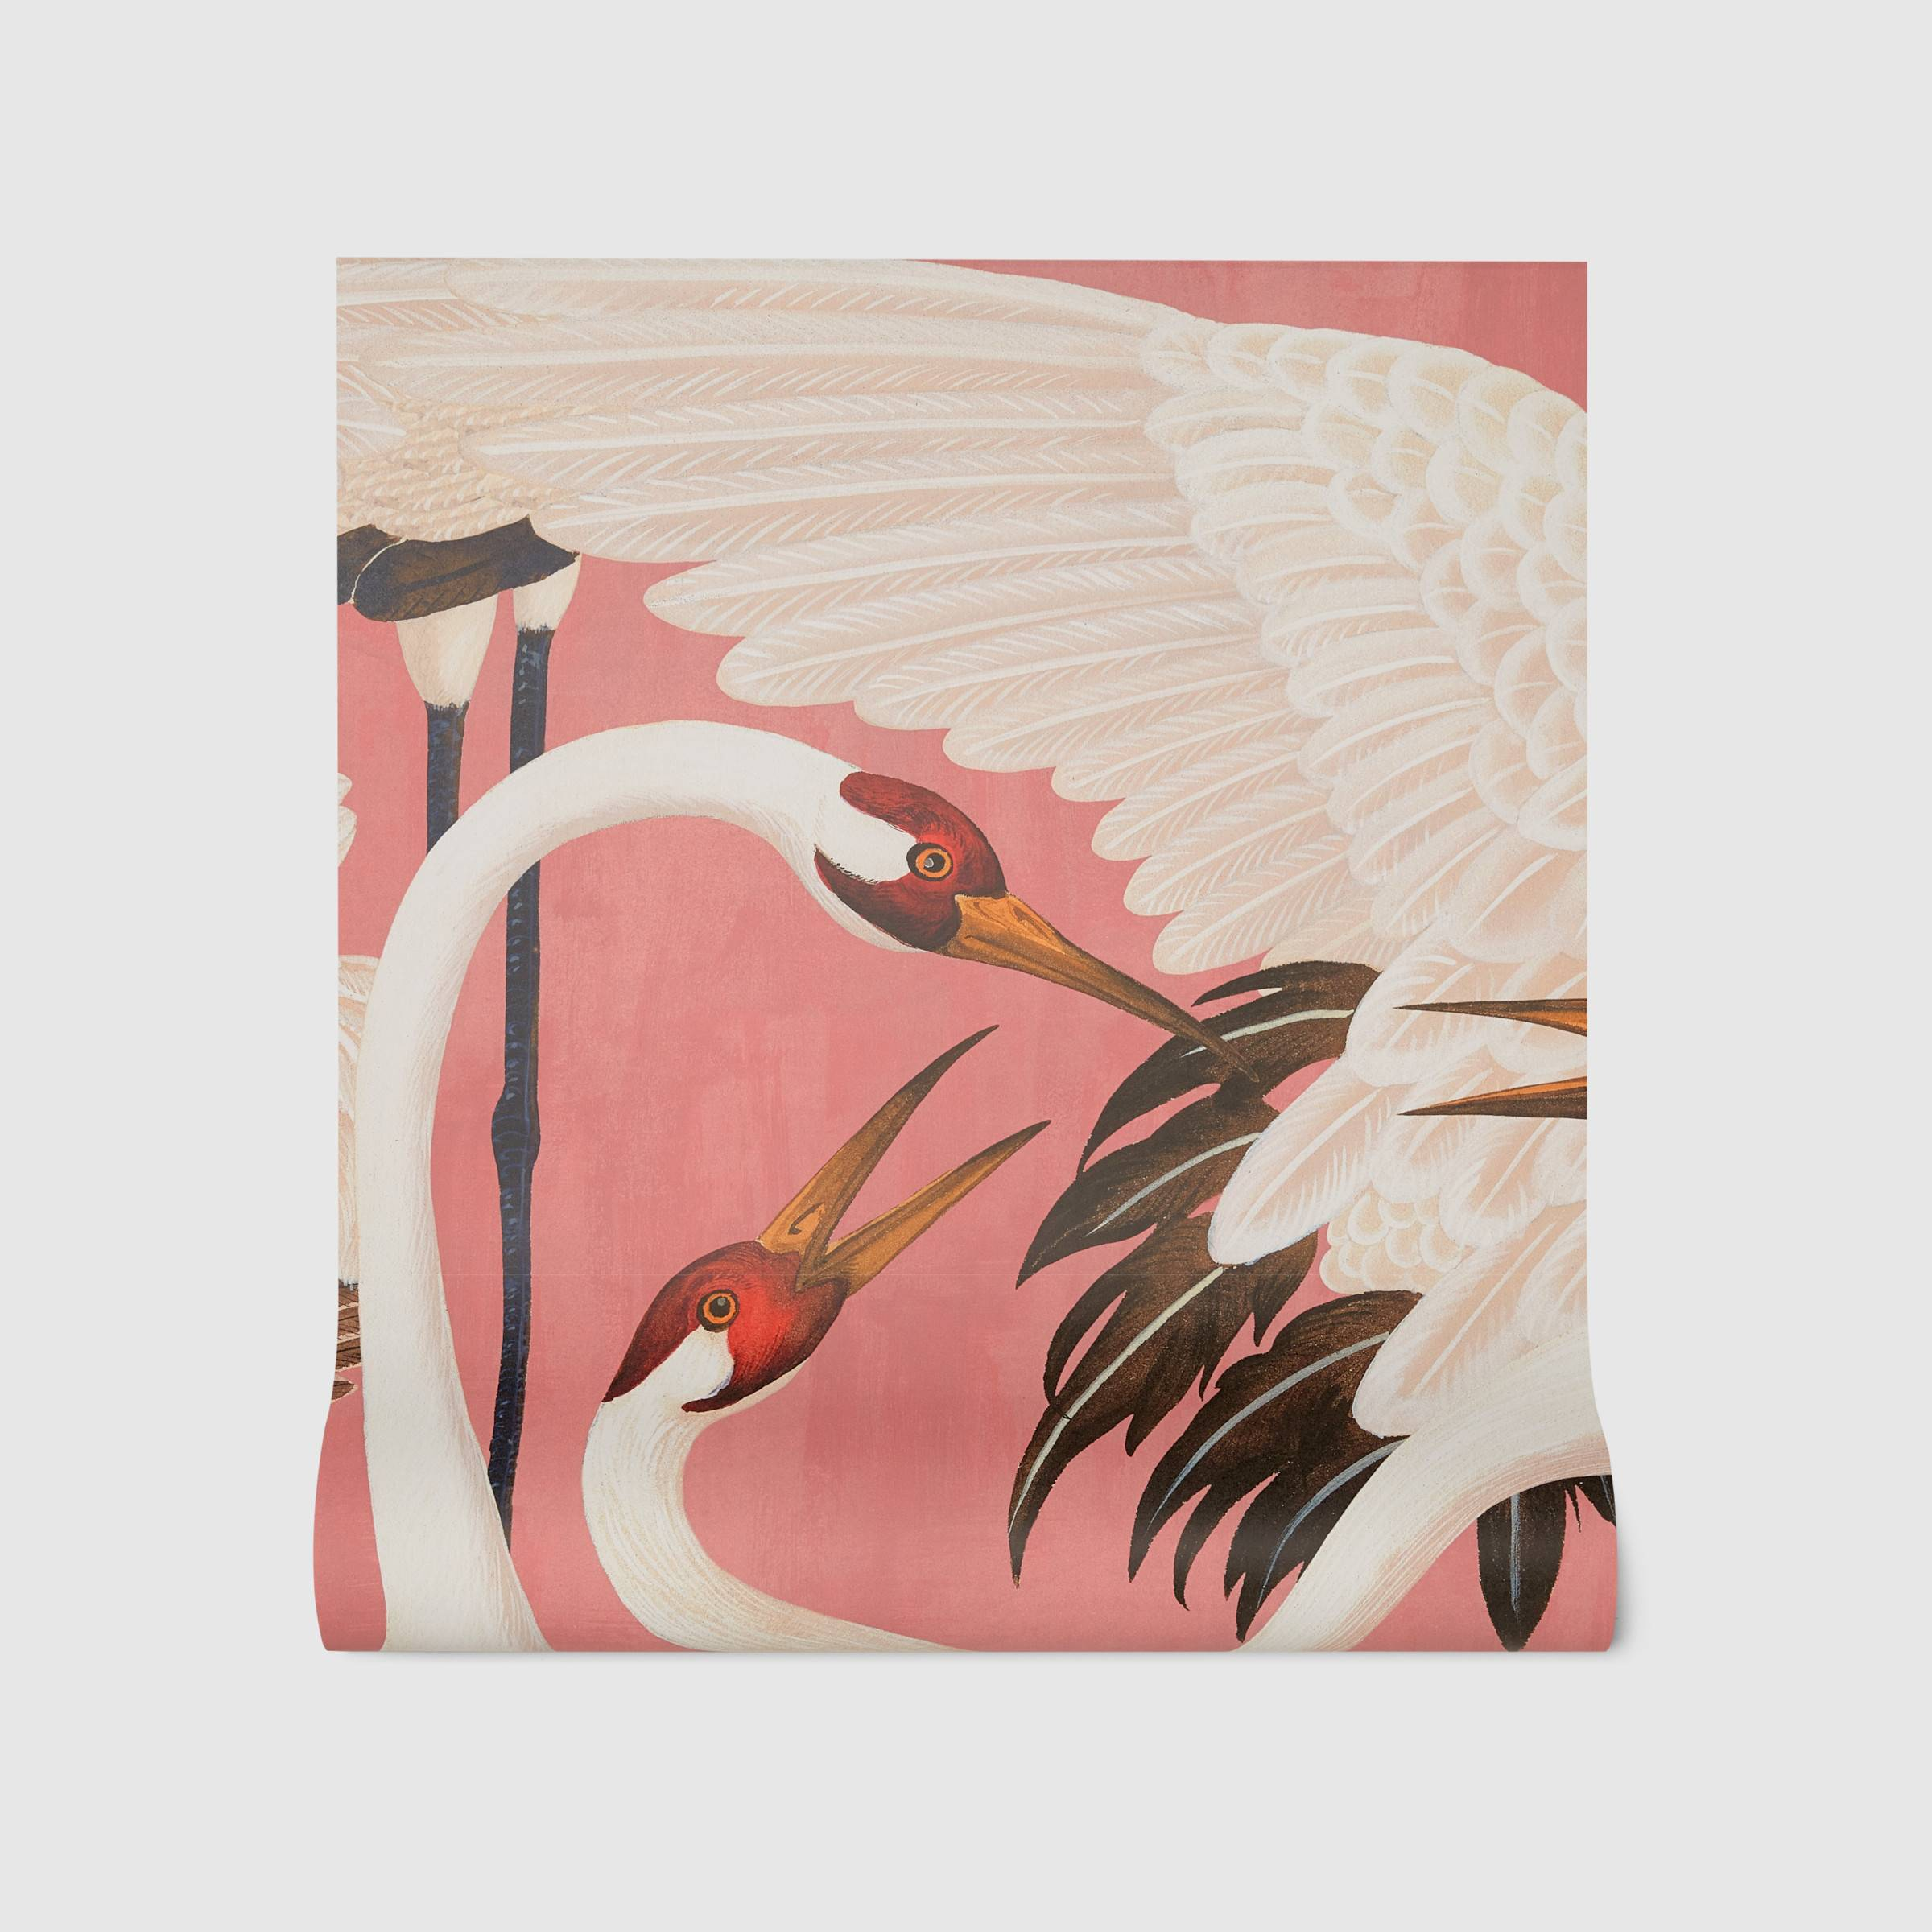 Gucci Heron wallpaper pink birds salmon white tropical #designninja